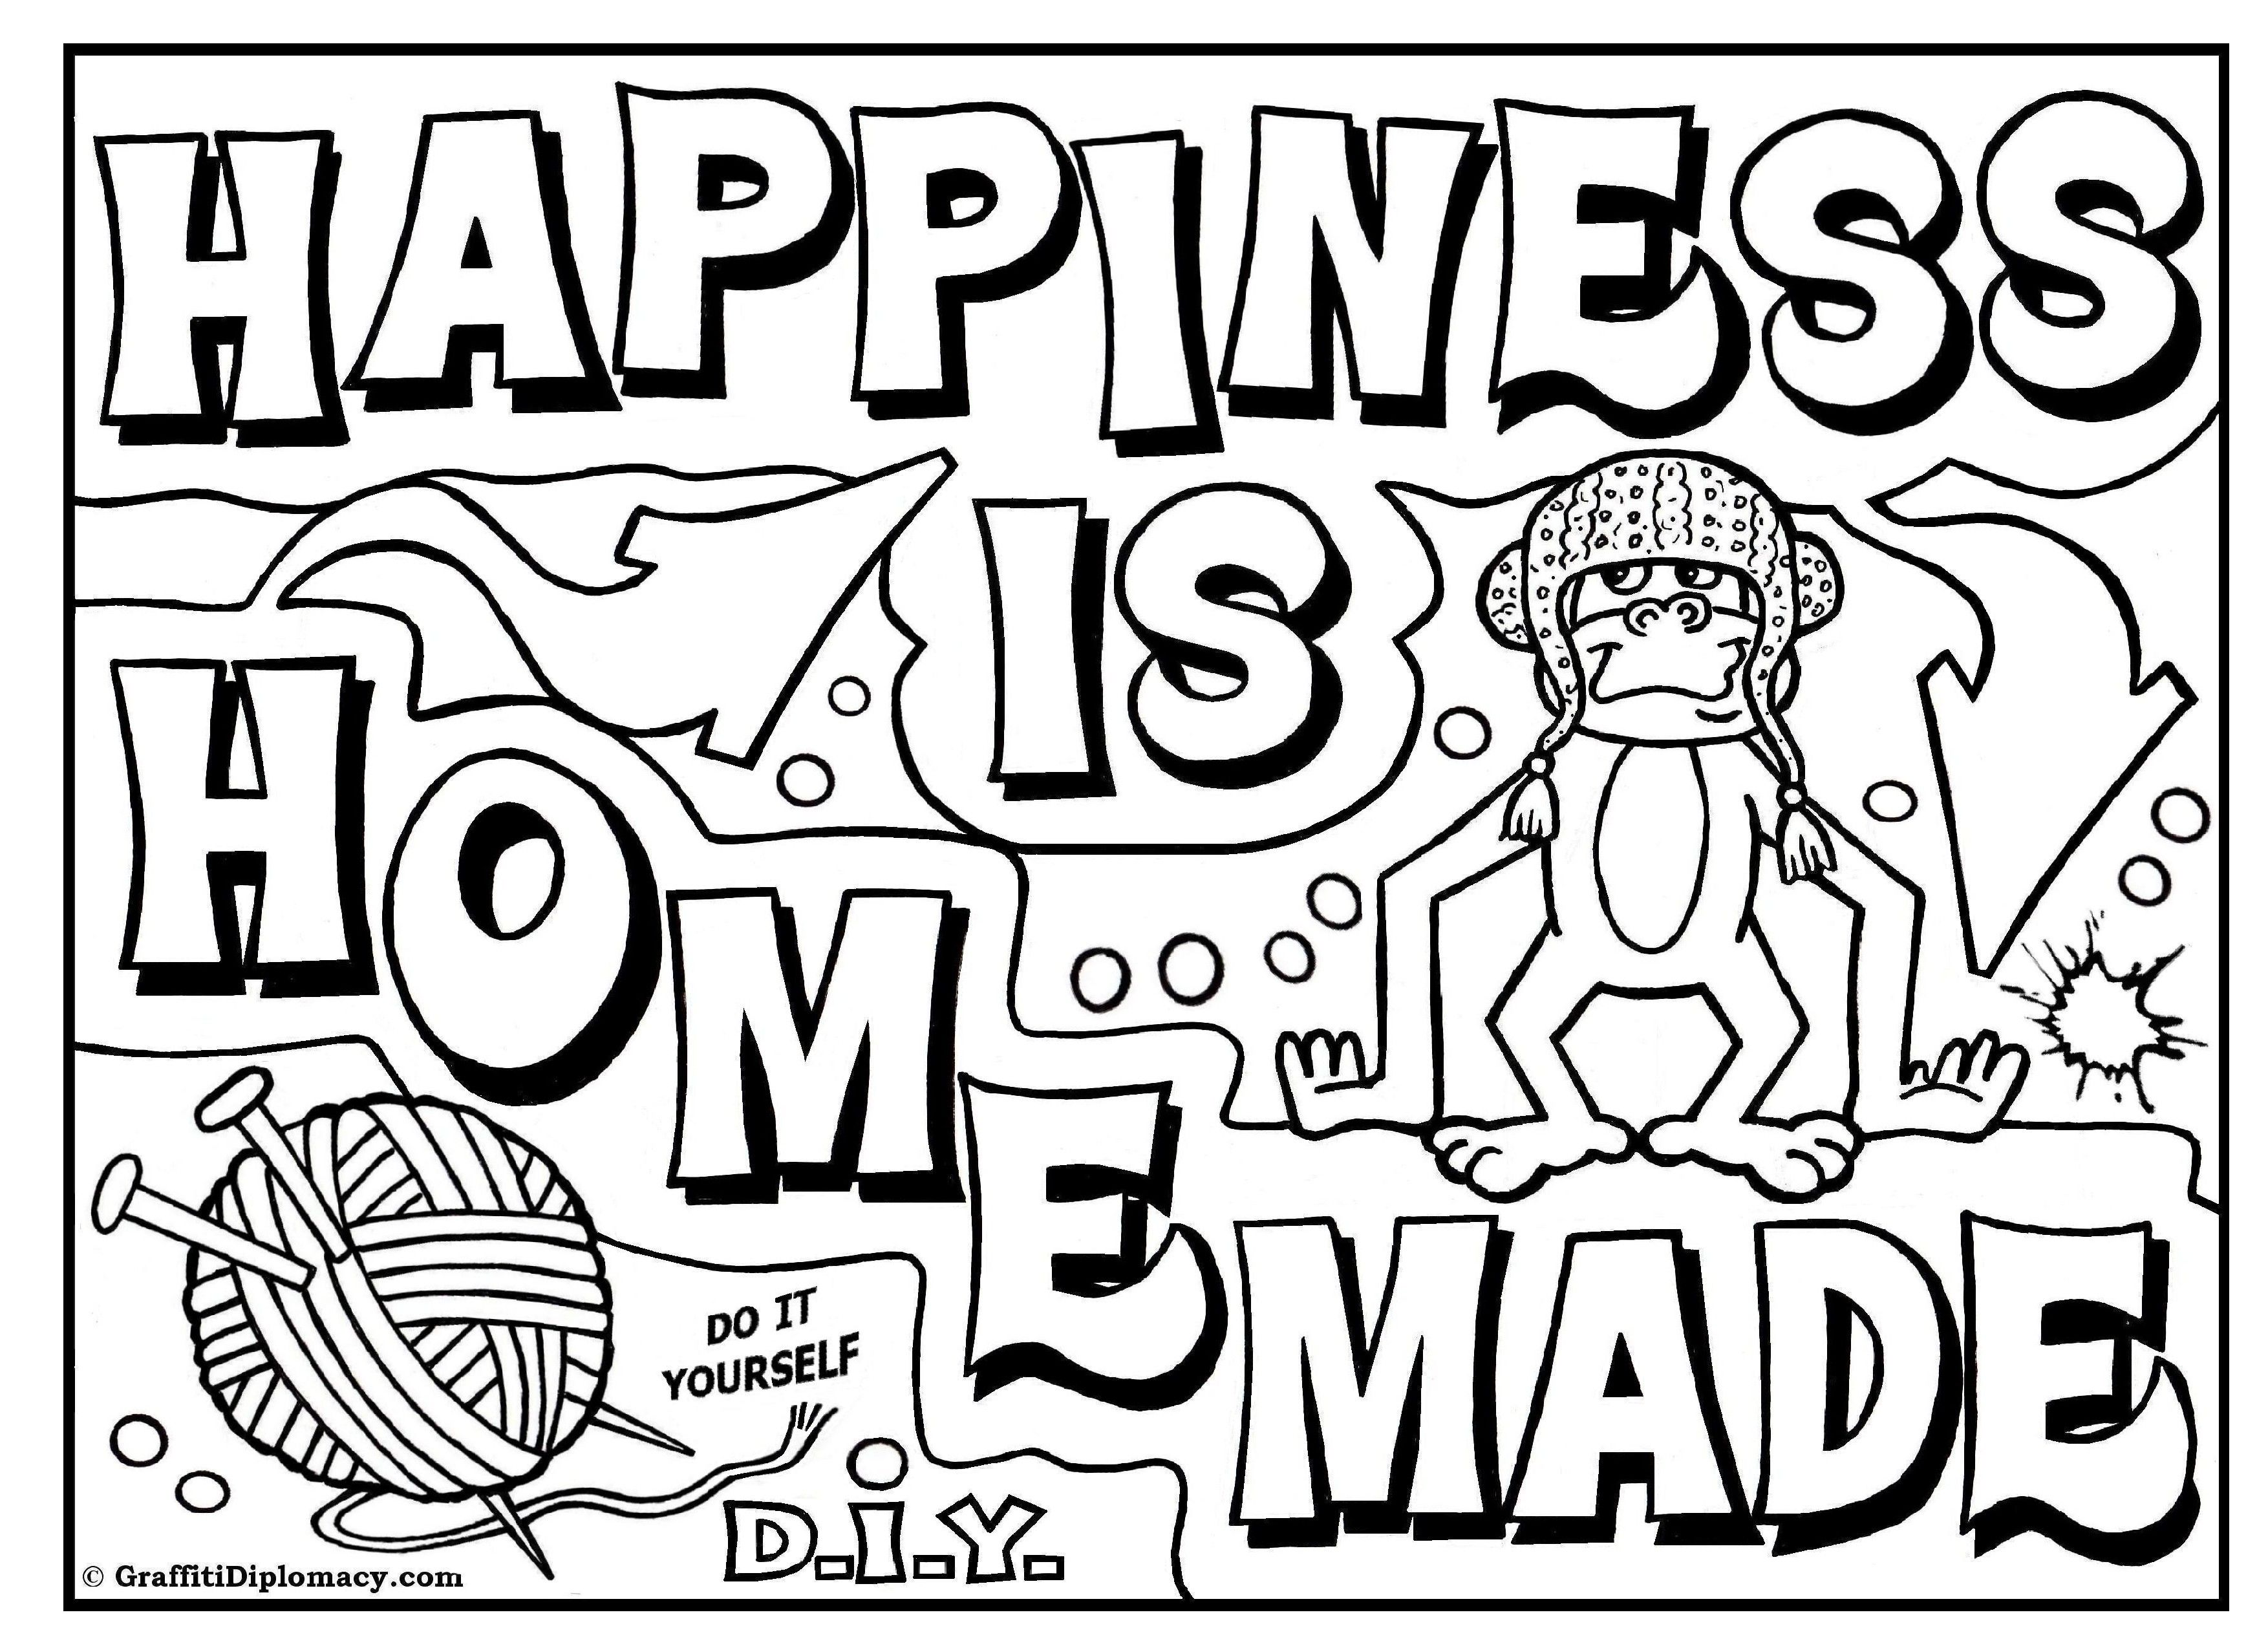 Free Coloring Page D I Y Graffiti Happiness Is Homemade Free Printable Coloring Pages Cool Designs To Draw Coloring Books